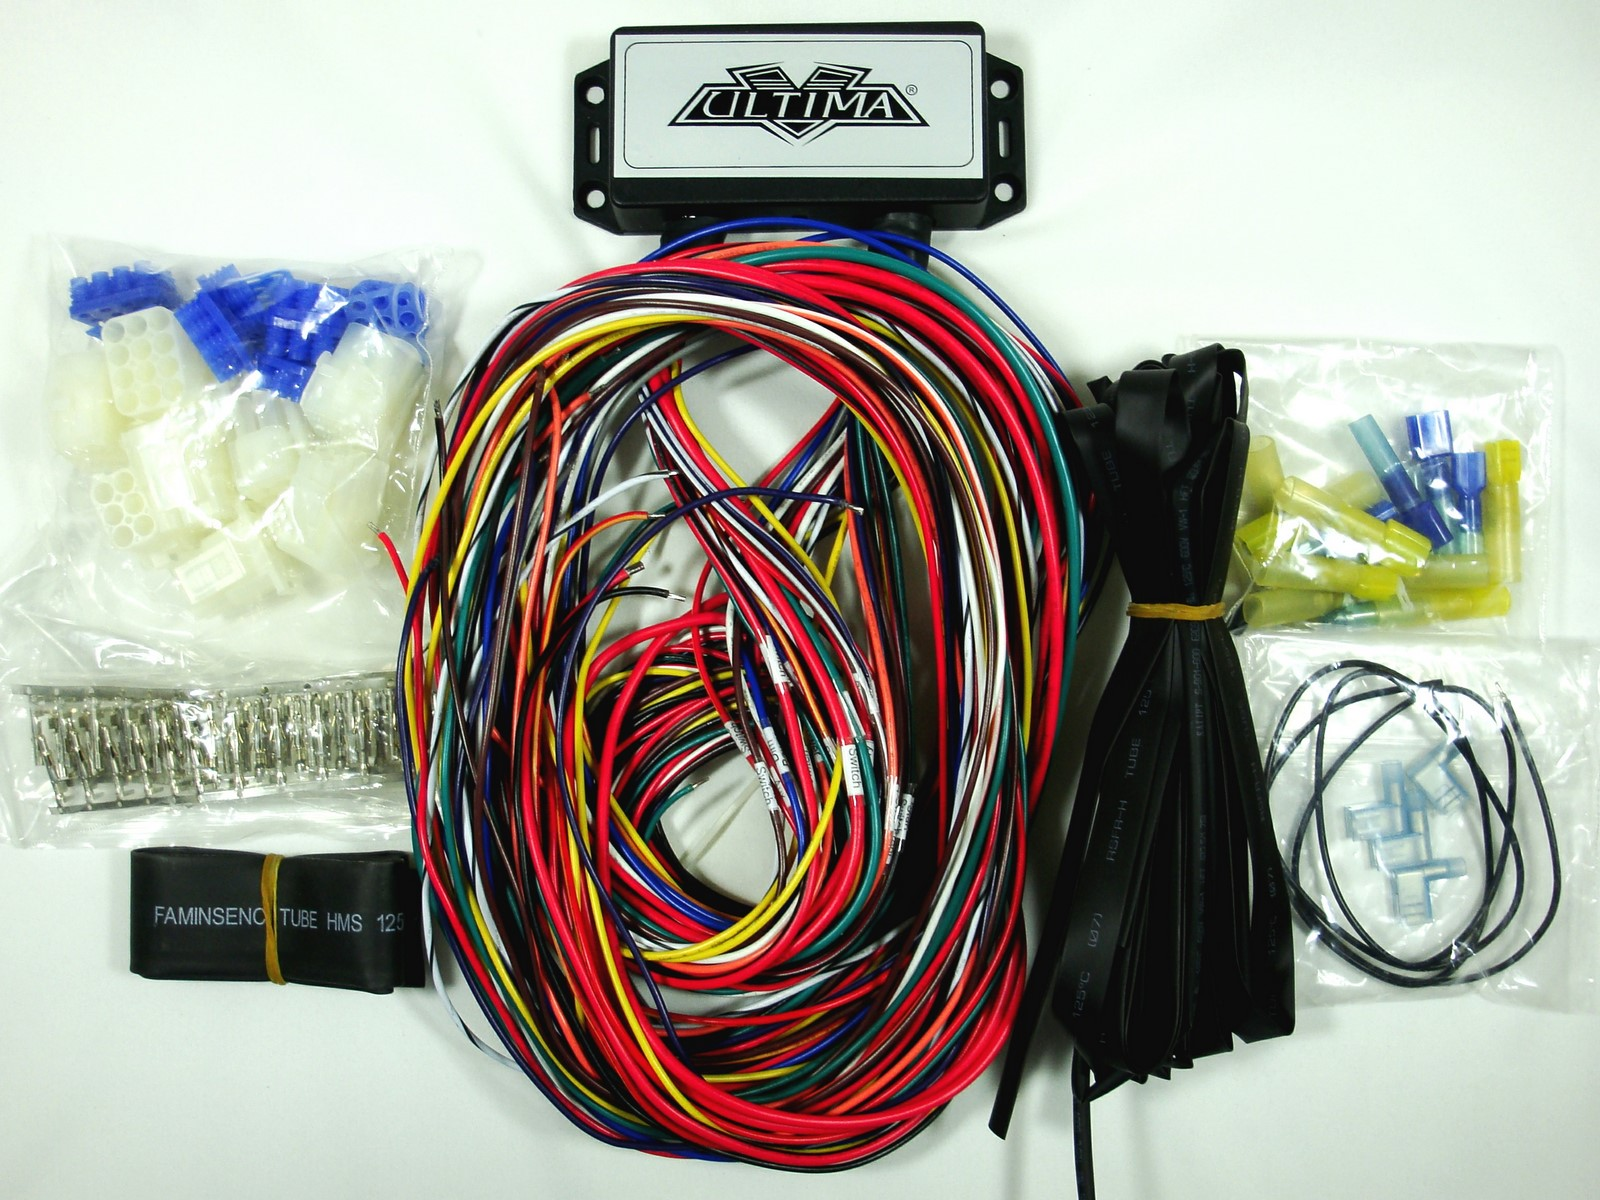 ls1 wire harness kit ultima® plus electronic wiring harness/system for harley ...